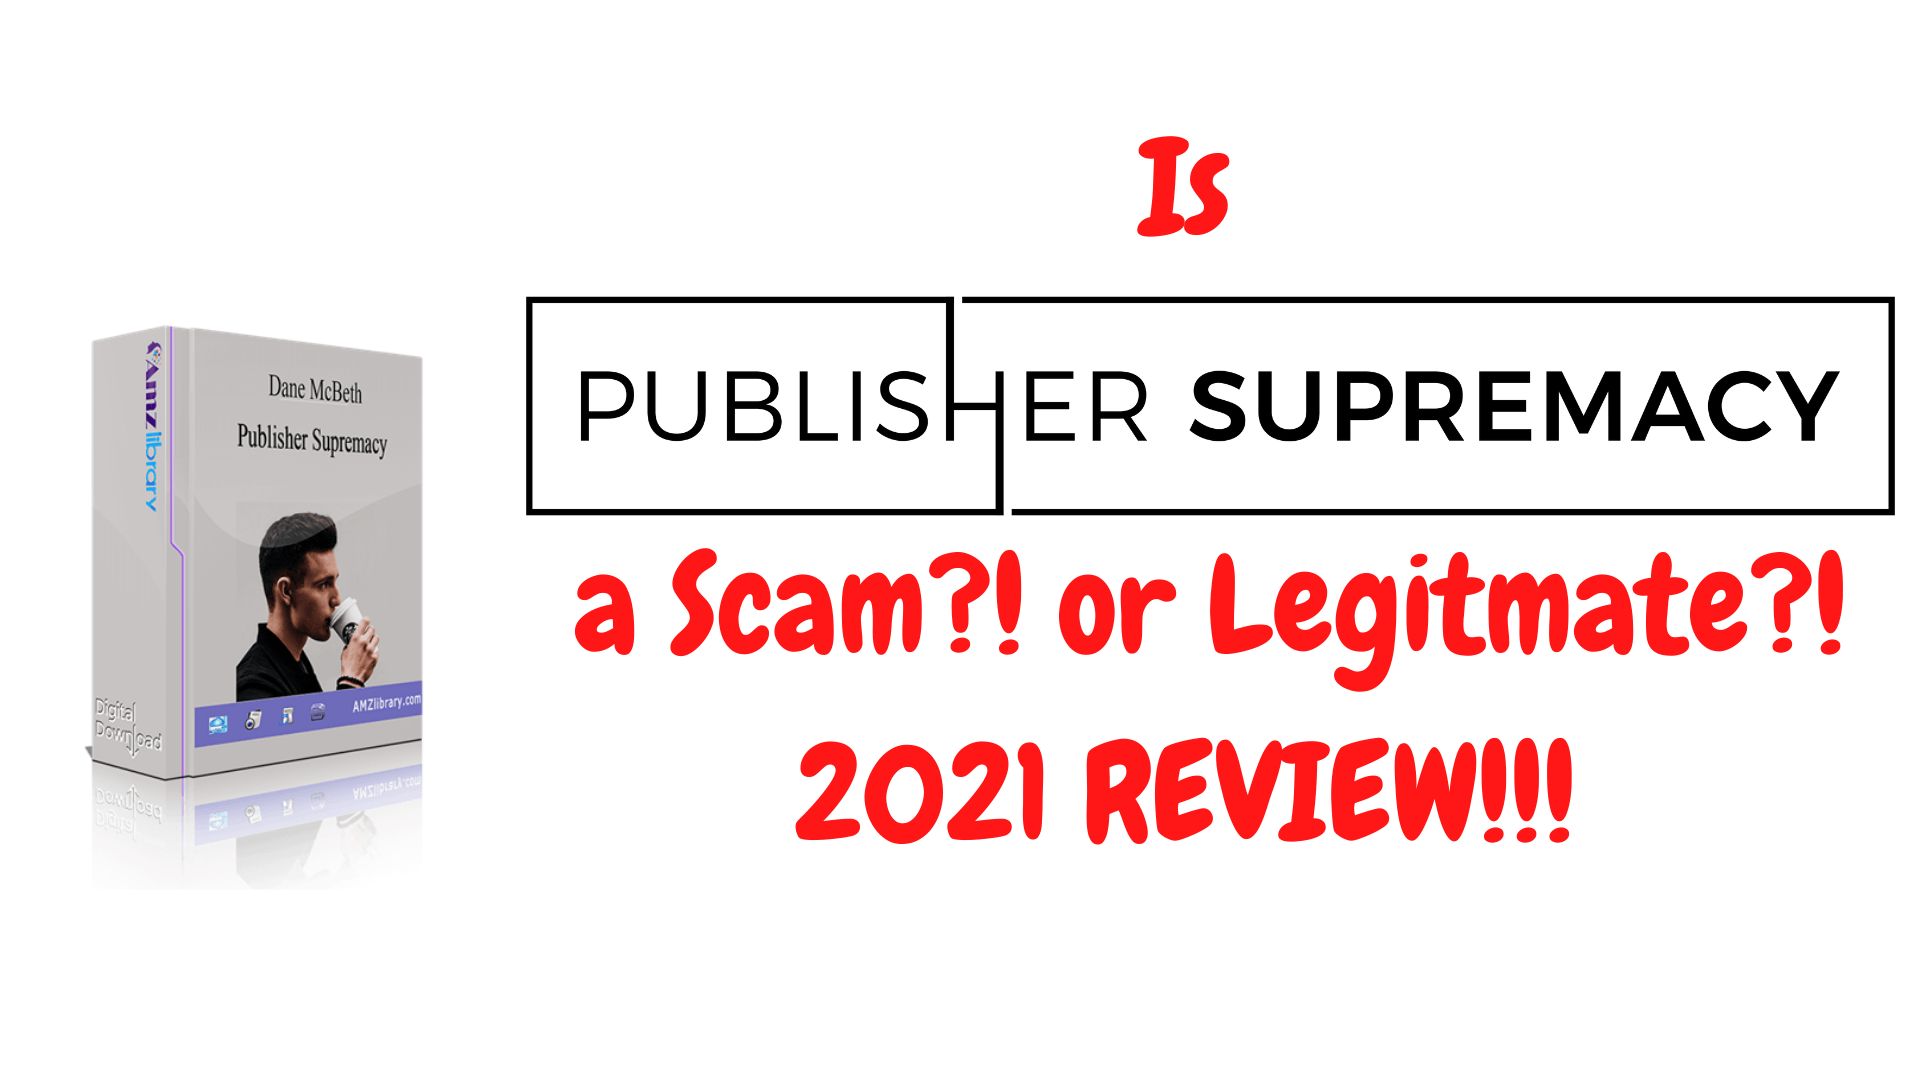 Publisher Supremacy Image FRONTPAGE